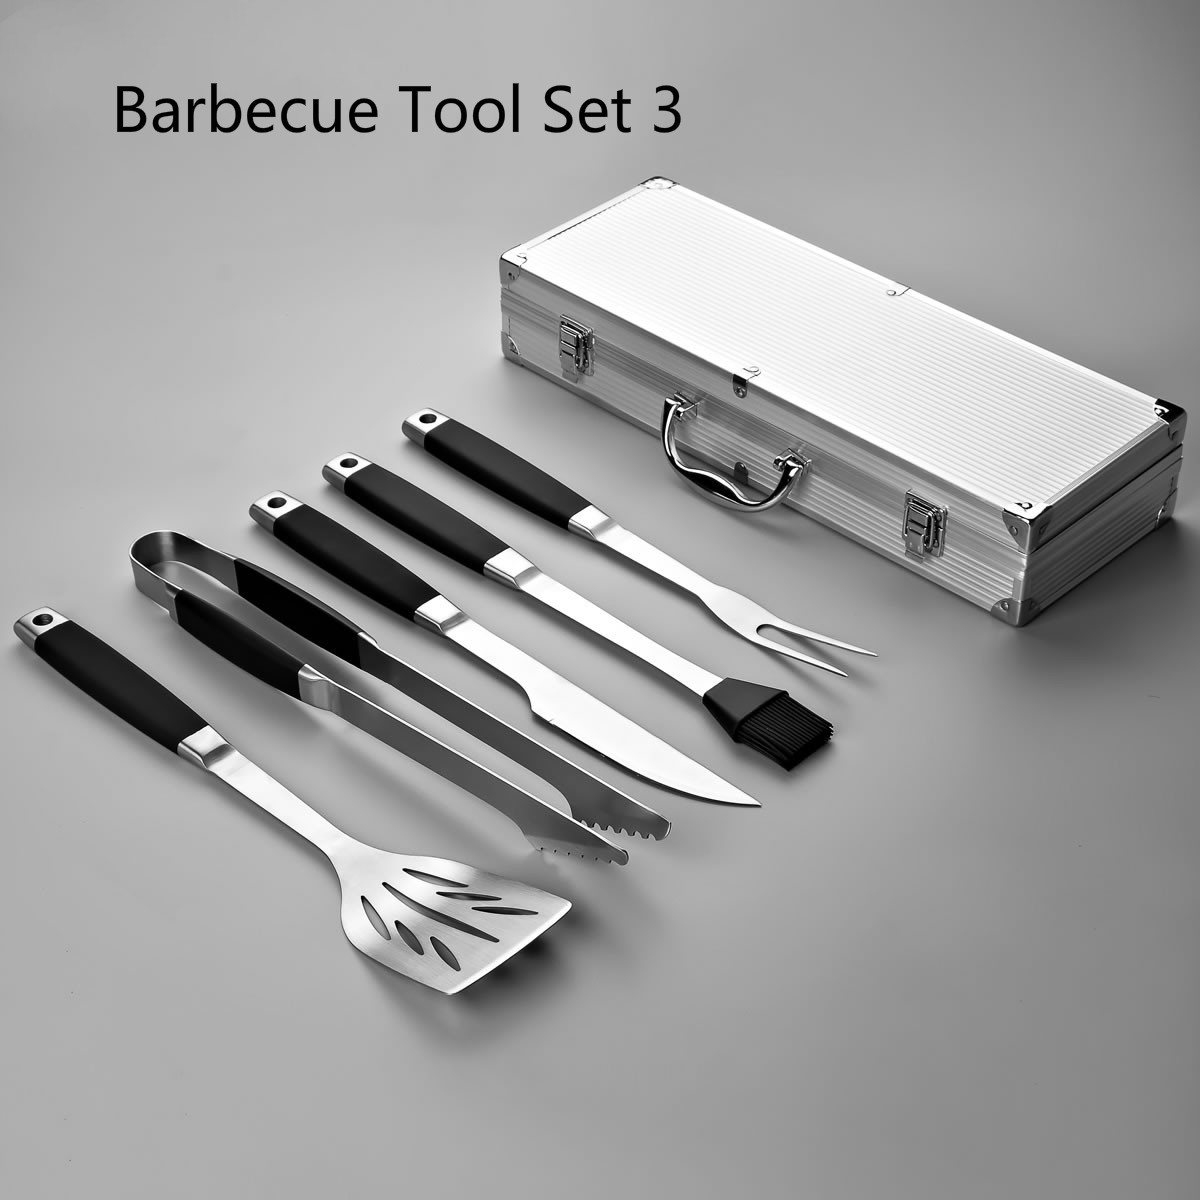 Outdoor Barbecue Tool Set Stainless Steel Barbecue Tool Five Sets Kitchen Accessories Barbecue Accessories